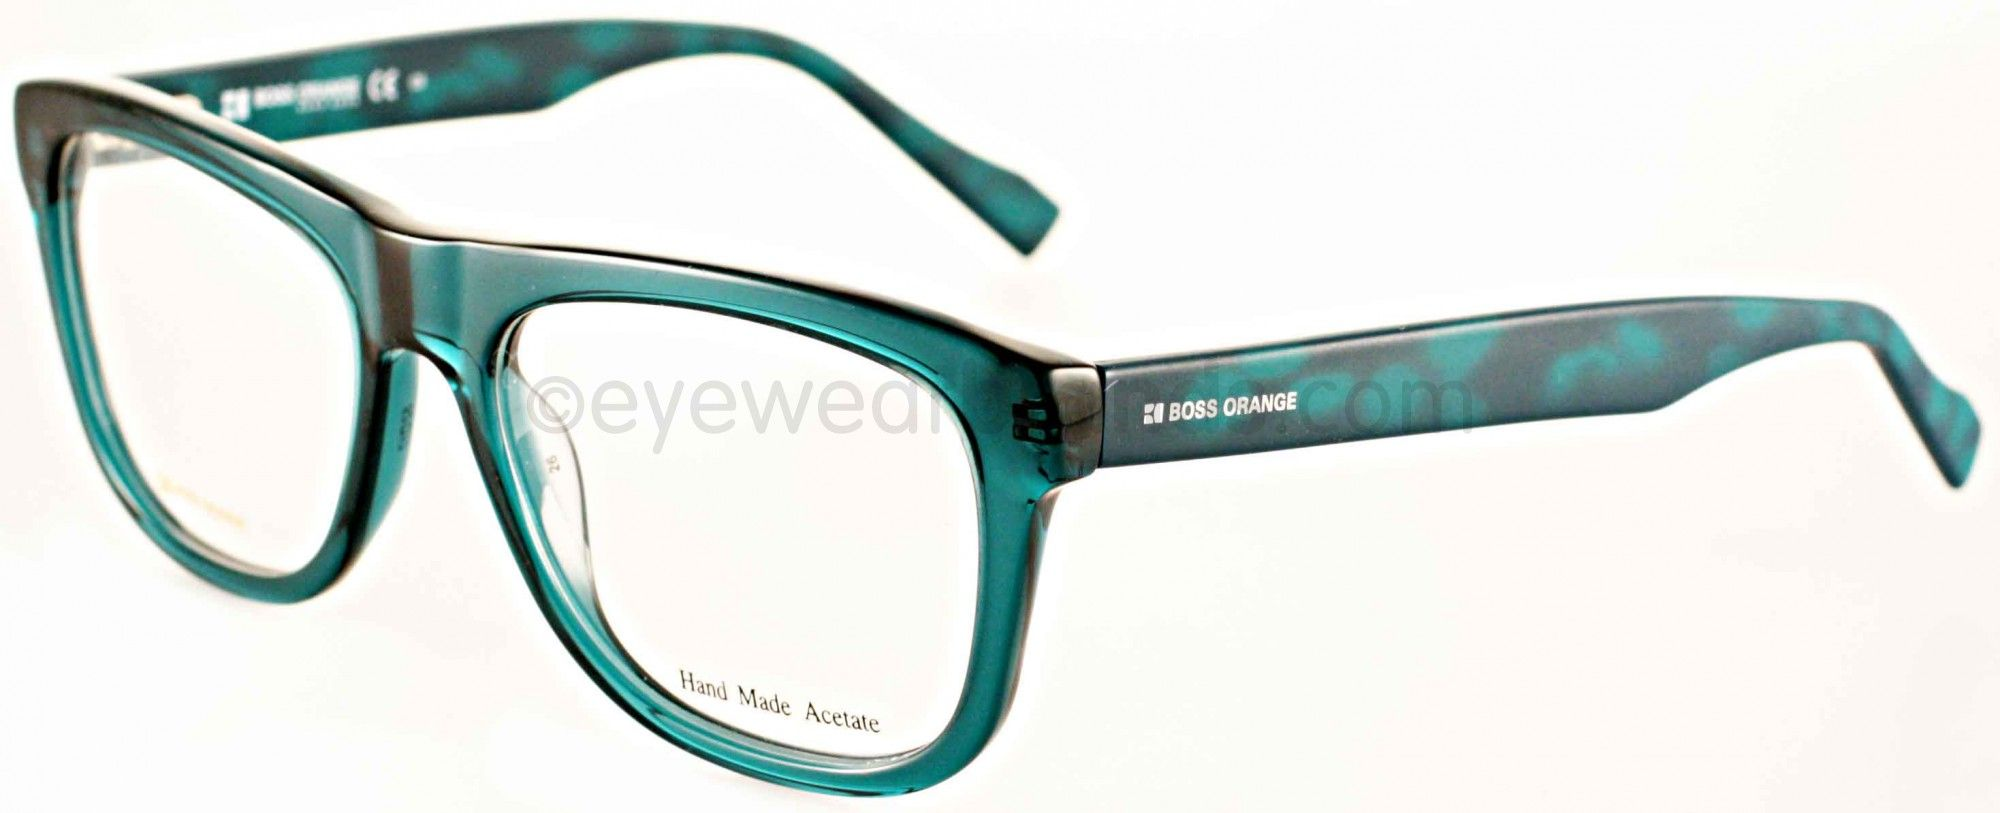 BO 0056 Glasses by BOSS Orange | Specsavers UK | Four eyes | Pinterest